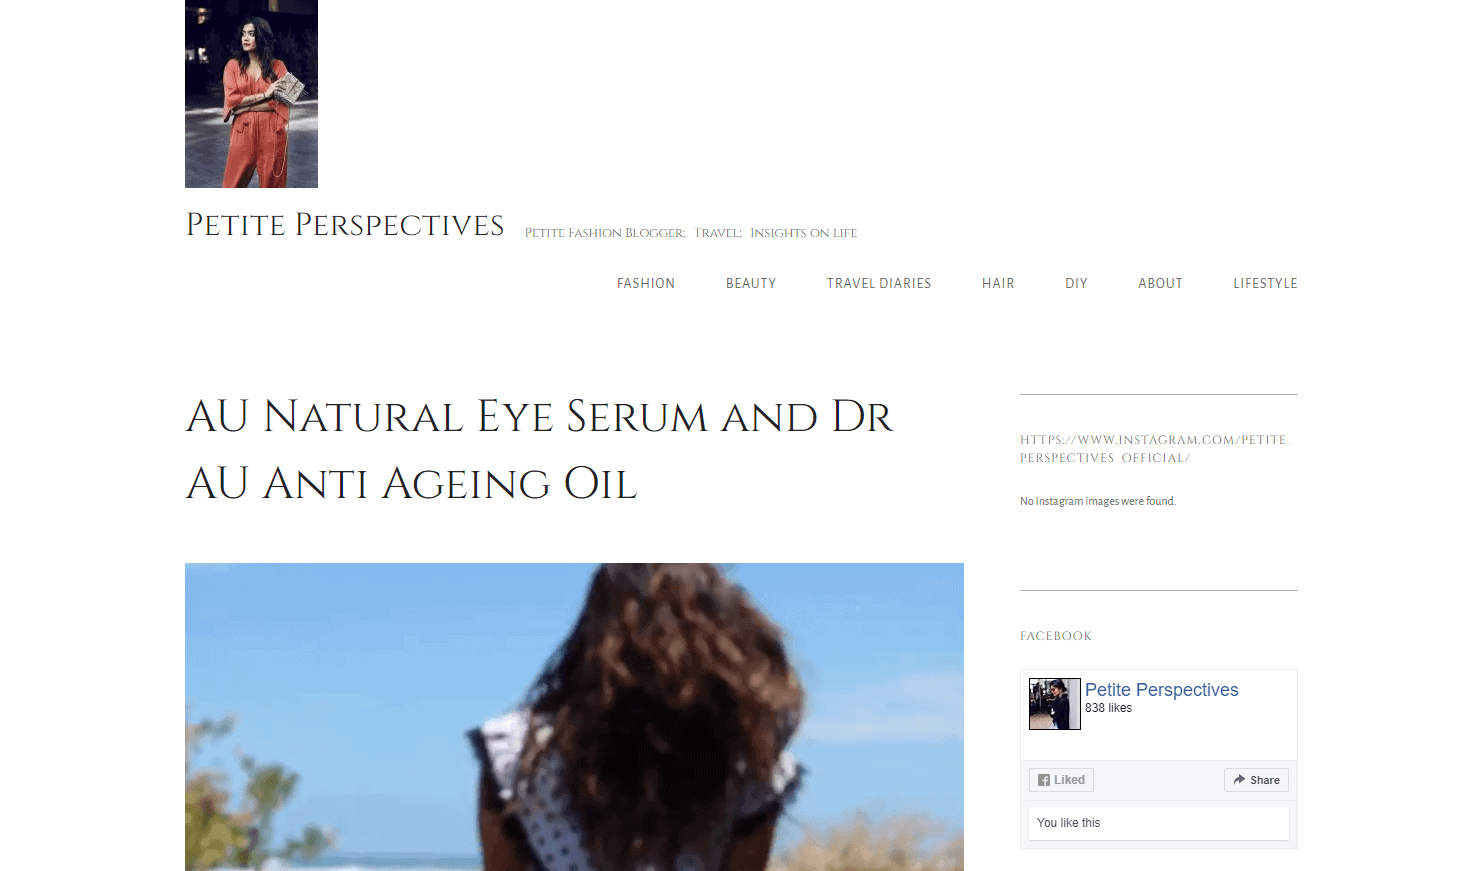 https://petiteperspectives.com/2019/01/17/au-natural-eye-serum-and-dr-au-anti-ageing-oil/